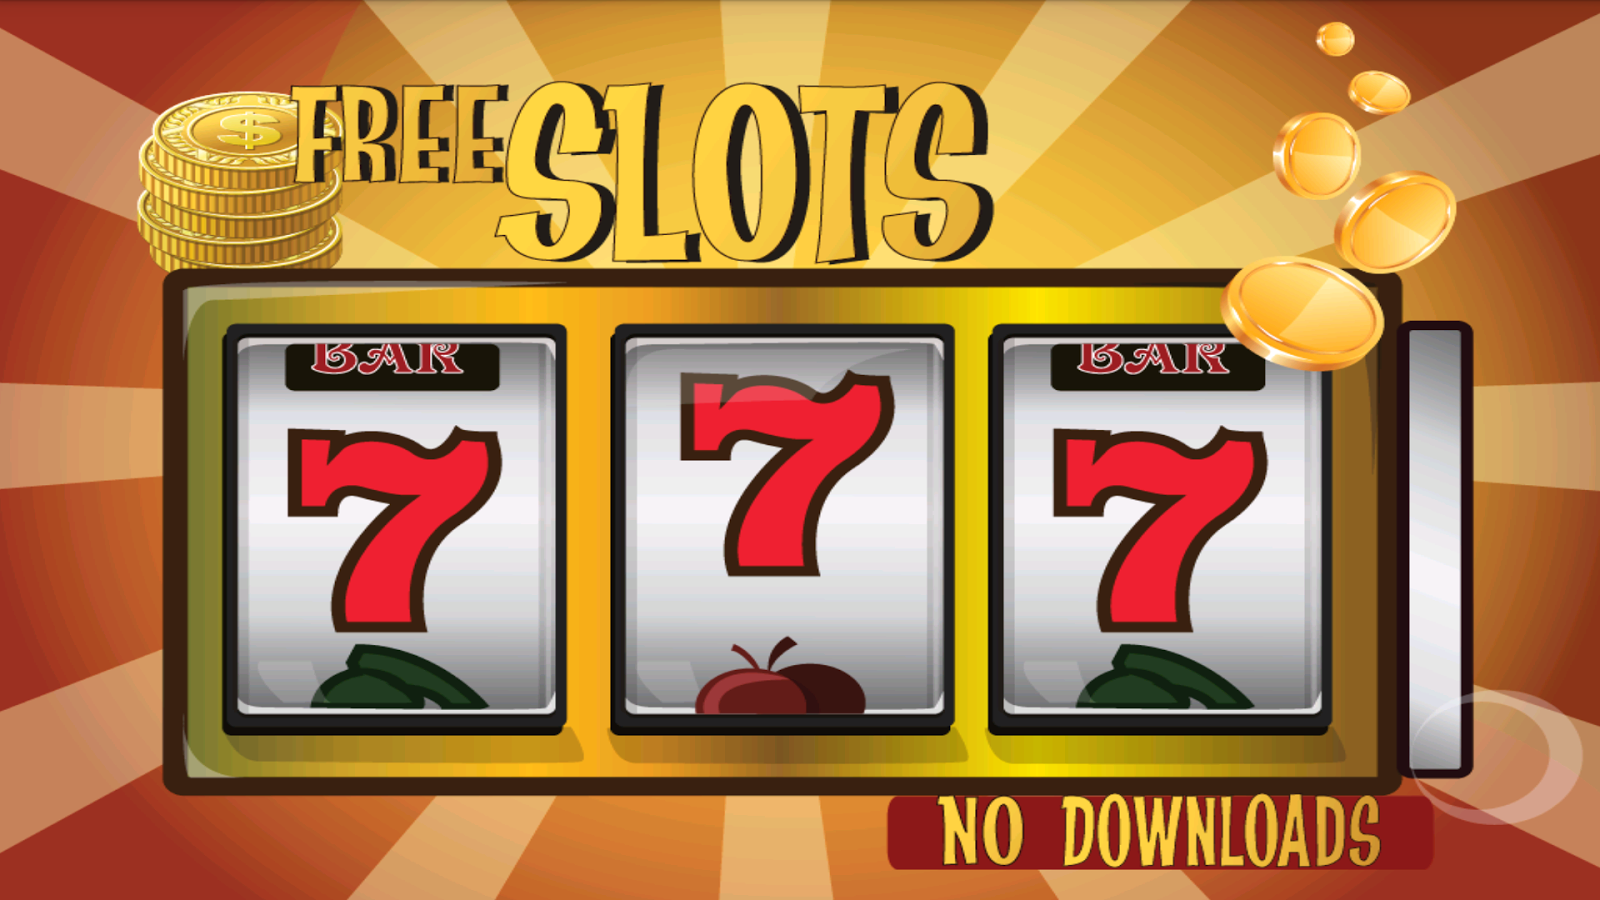 Pirates Bay Slot - Play for Free Online with No Downloads